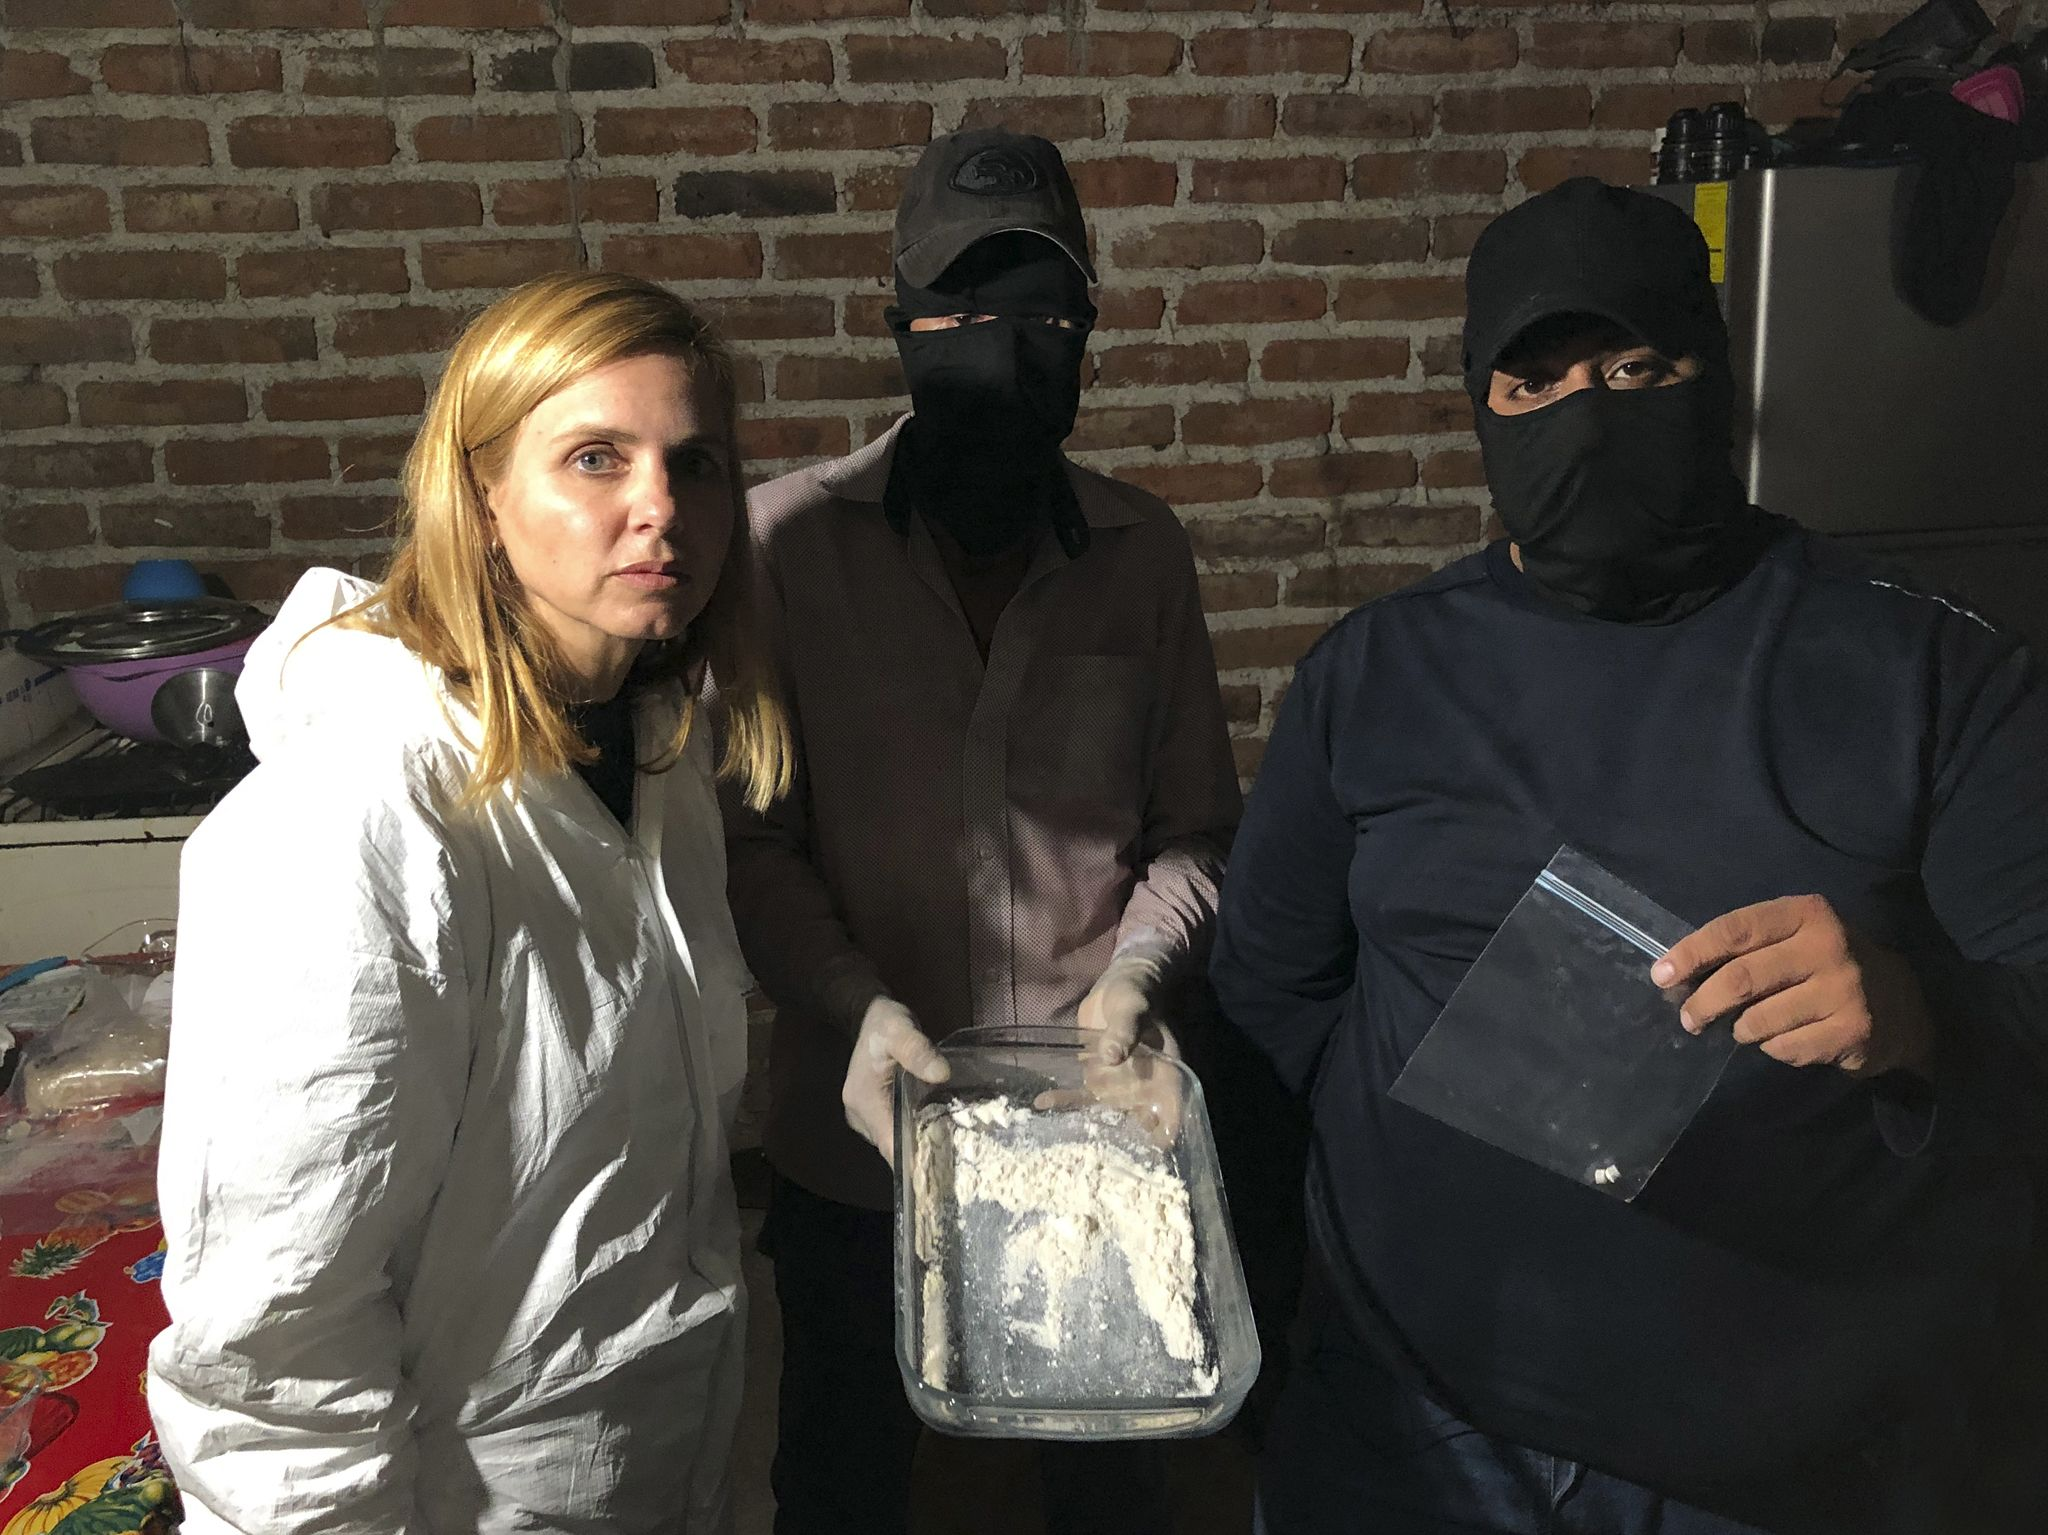 Mariana van Zeller (L) with cartel chemists in a fentanyl lab. This image is from Trafficked... [Photo of the day - January 2021]